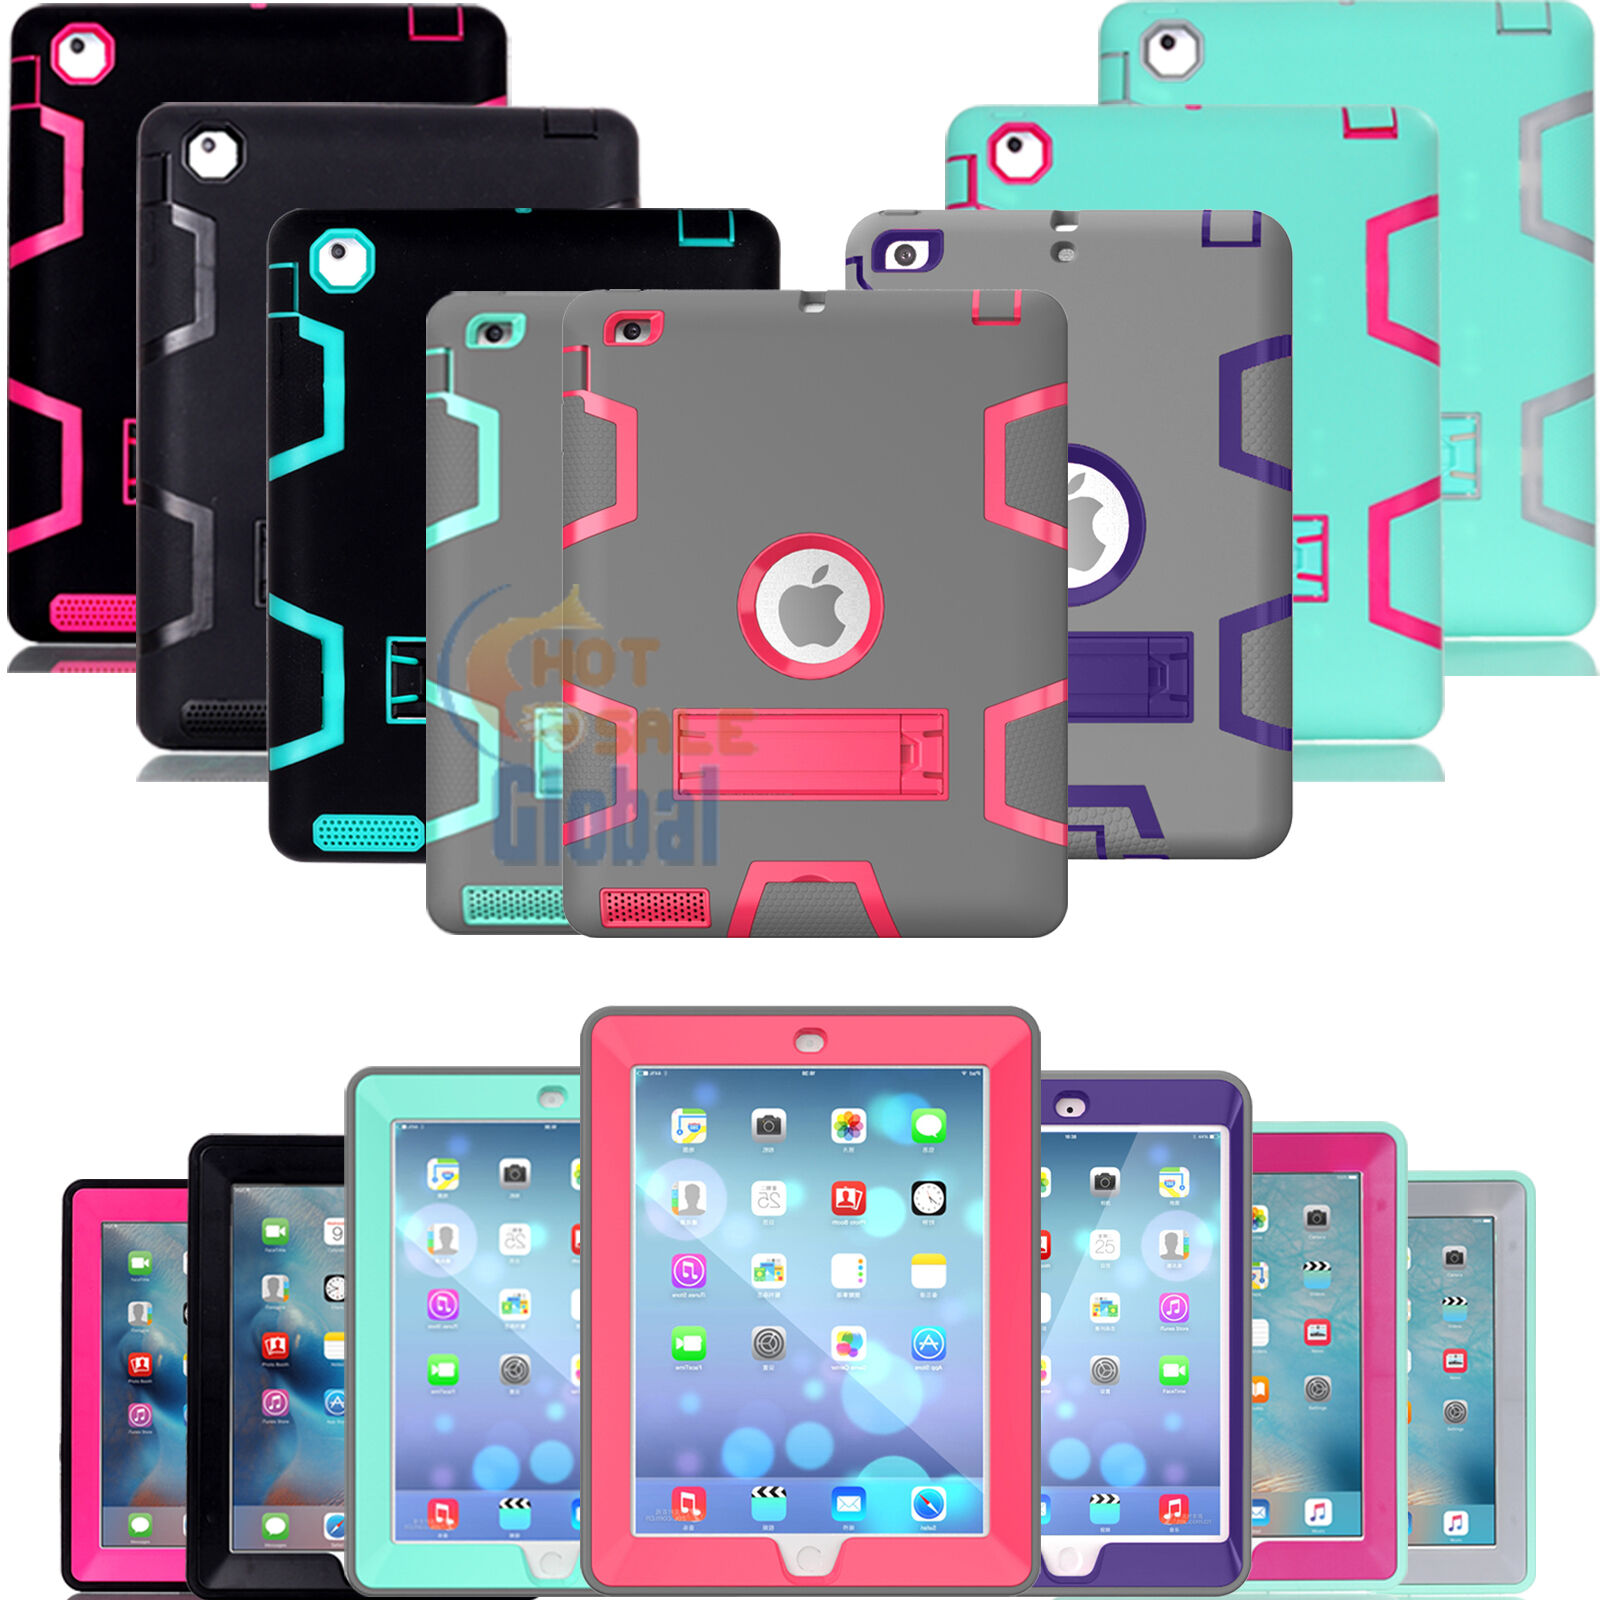 Ipad Mini Case - Shockproof Military Heavy Duty Rubber With Hard Stand Case Cover For Apple iPad